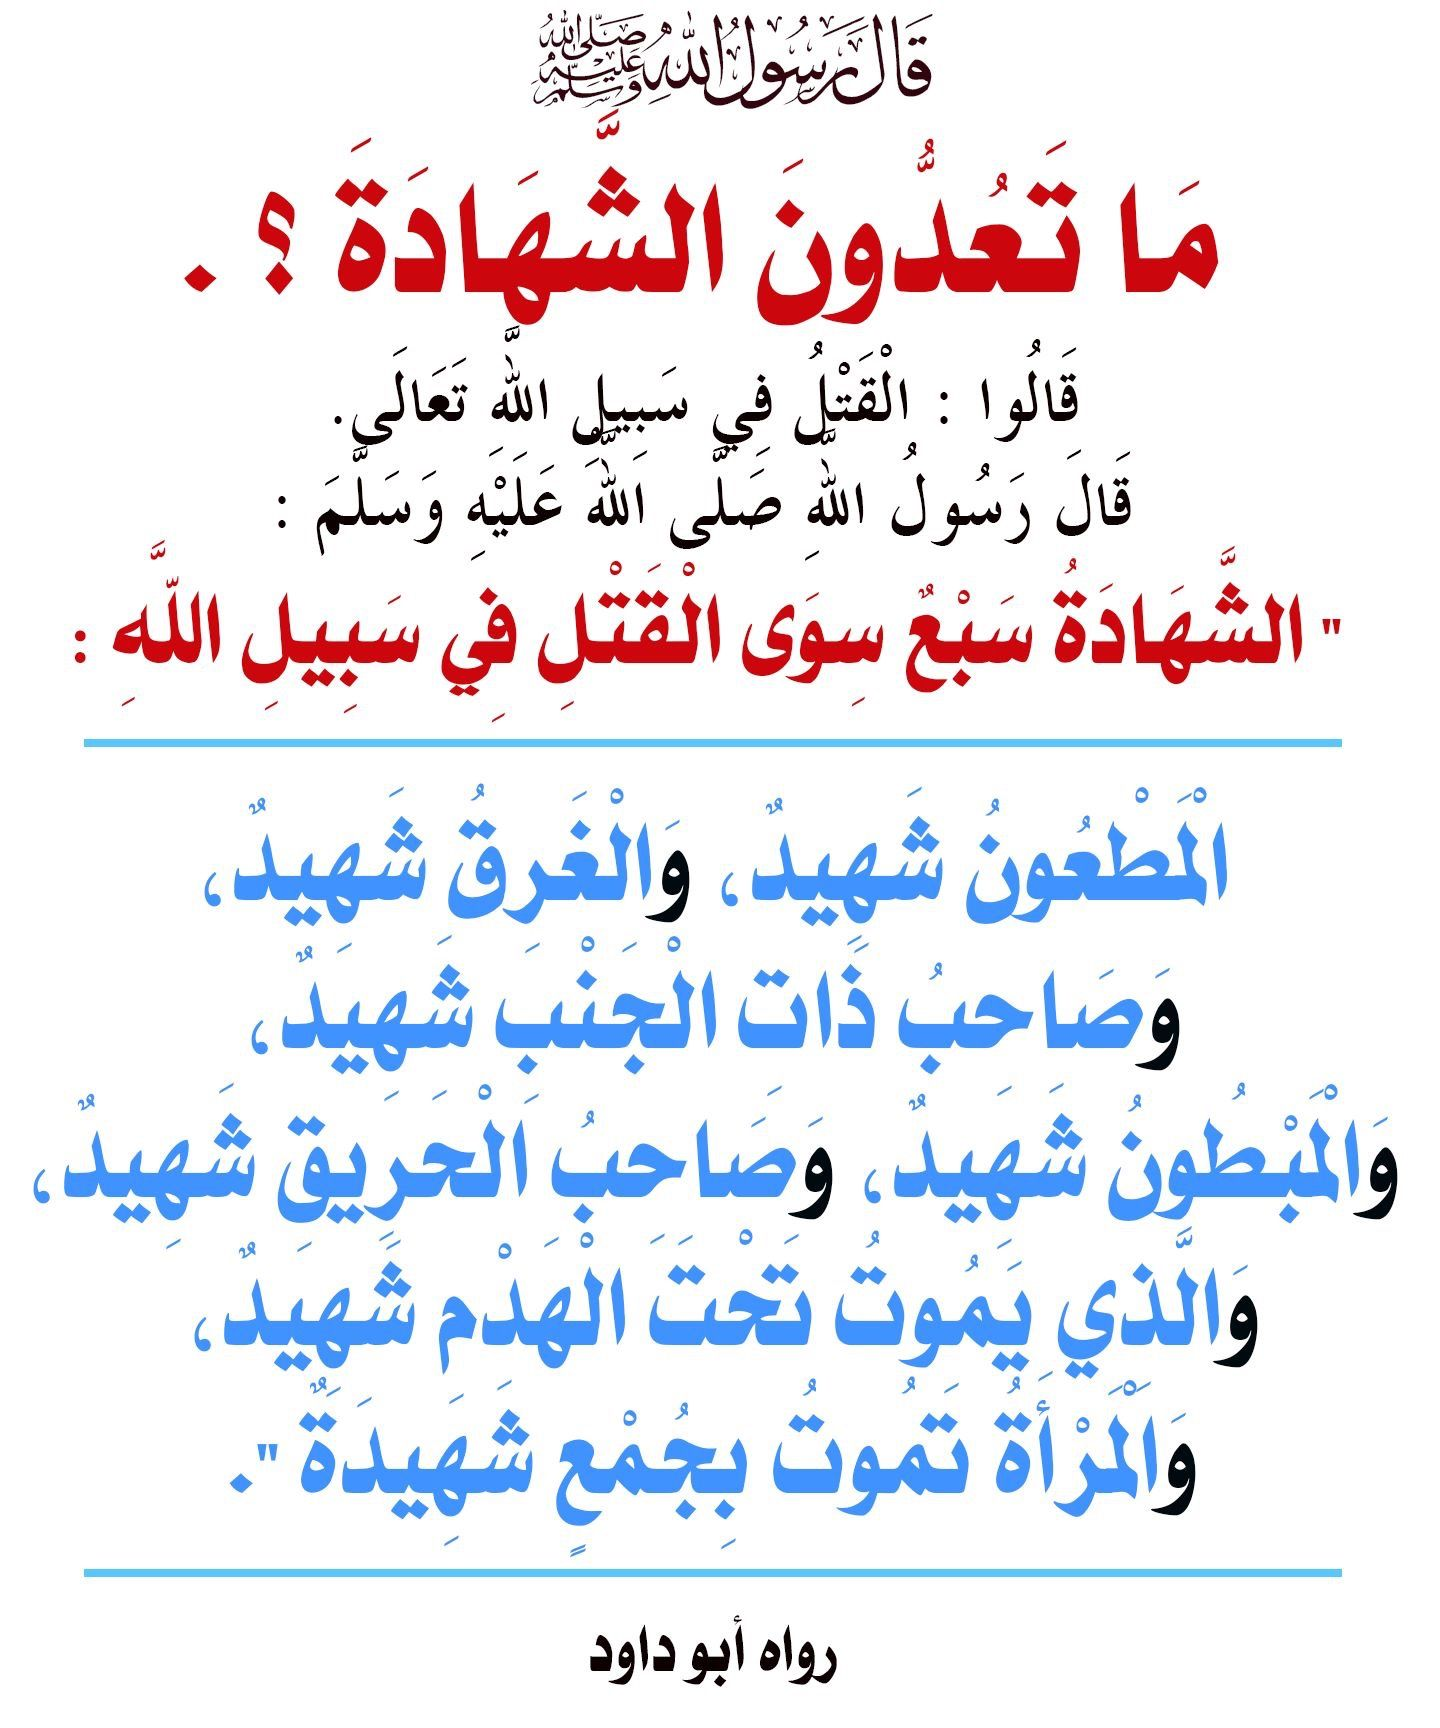 Pin By Nawras On أحاديث نبوية Islamic Phrases Quran Quotes Love Islamic Quotes Quran